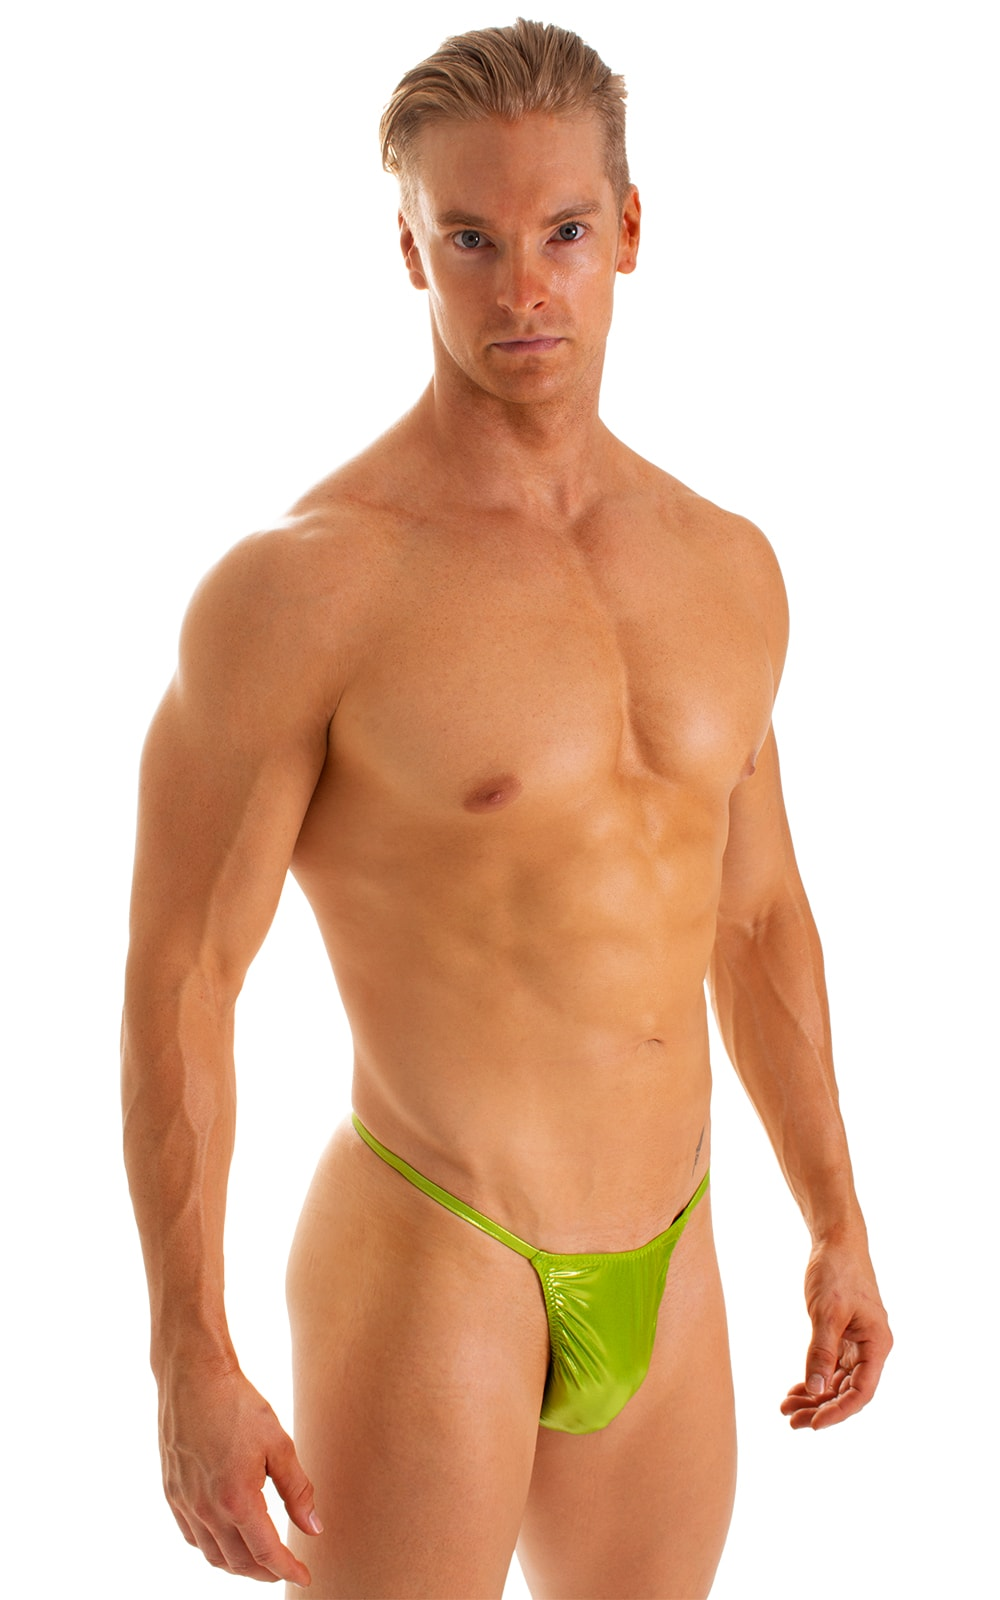 Smooth Pouch Skinny Sides Swim Thong in Ice Karma Lemon-Lime 1